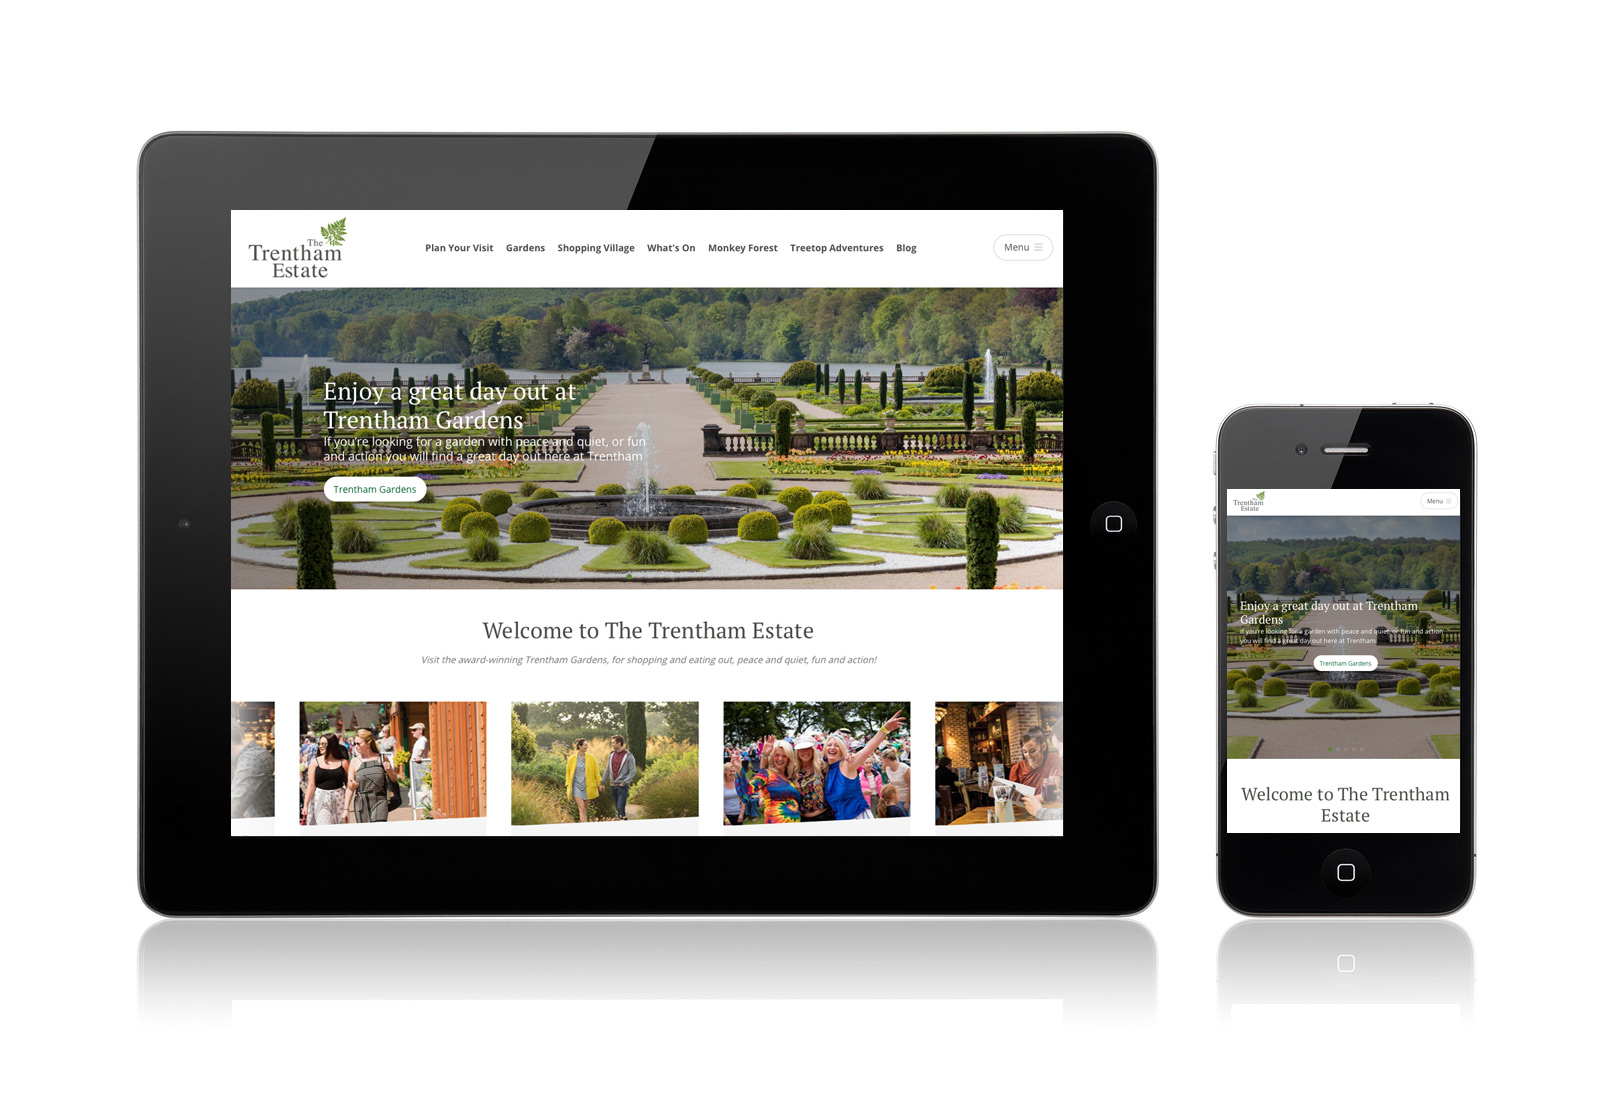 Trentham Gardens - Web design and build using Umbraco CMS